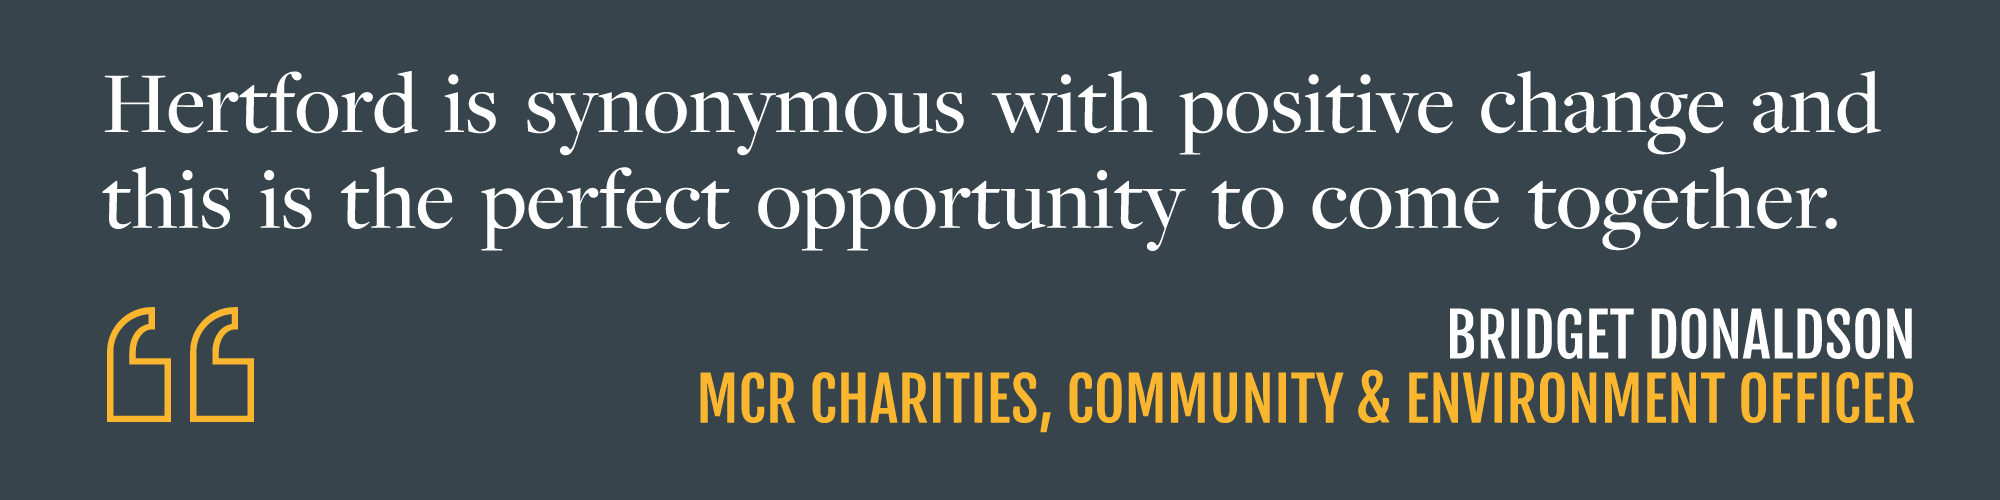 """White text on grey background reading """"Hertford is synonymous with positive change and this is the perfect opportunity to come together"""" Bridget Donaldson, MCR Charities, Community & Environment Officer"""